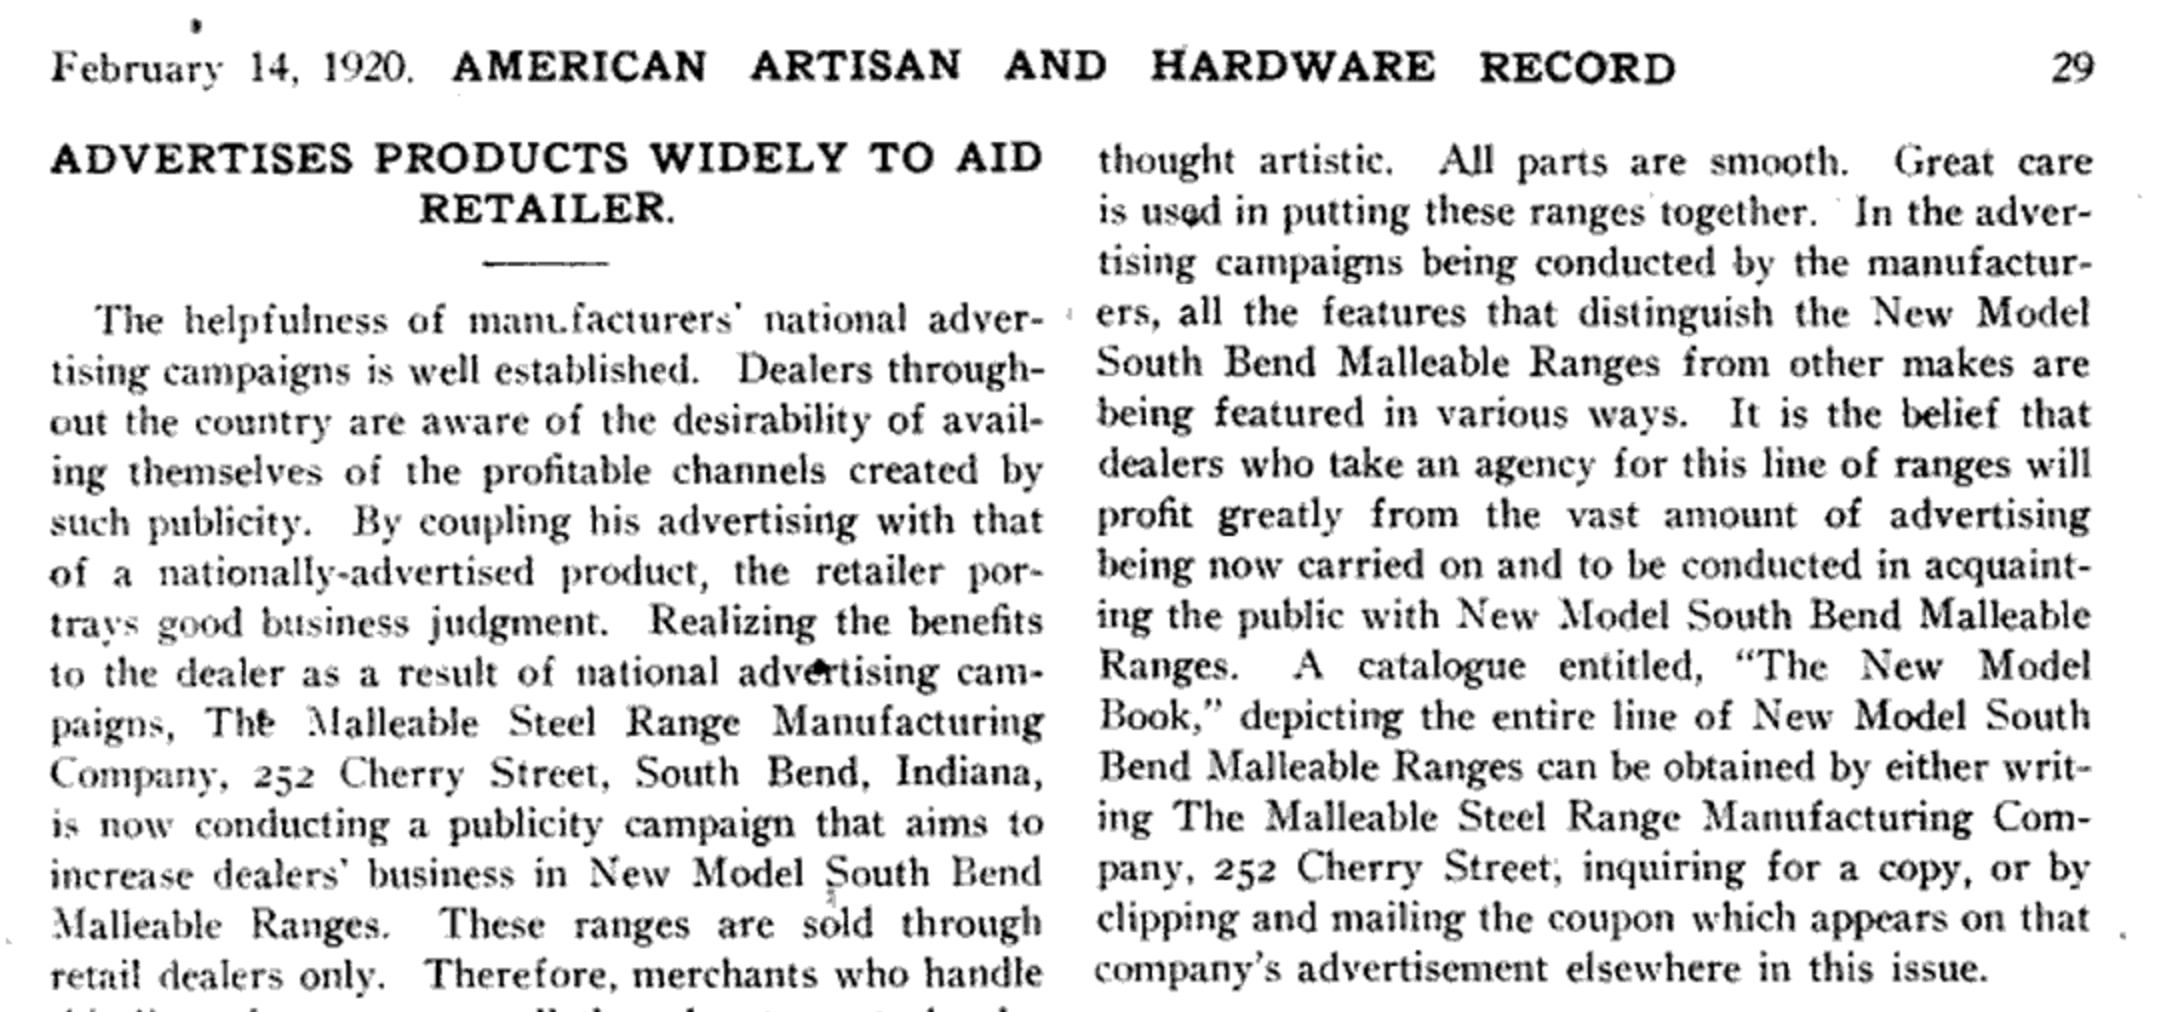 The American Artisan and Hardware Record 1920.png